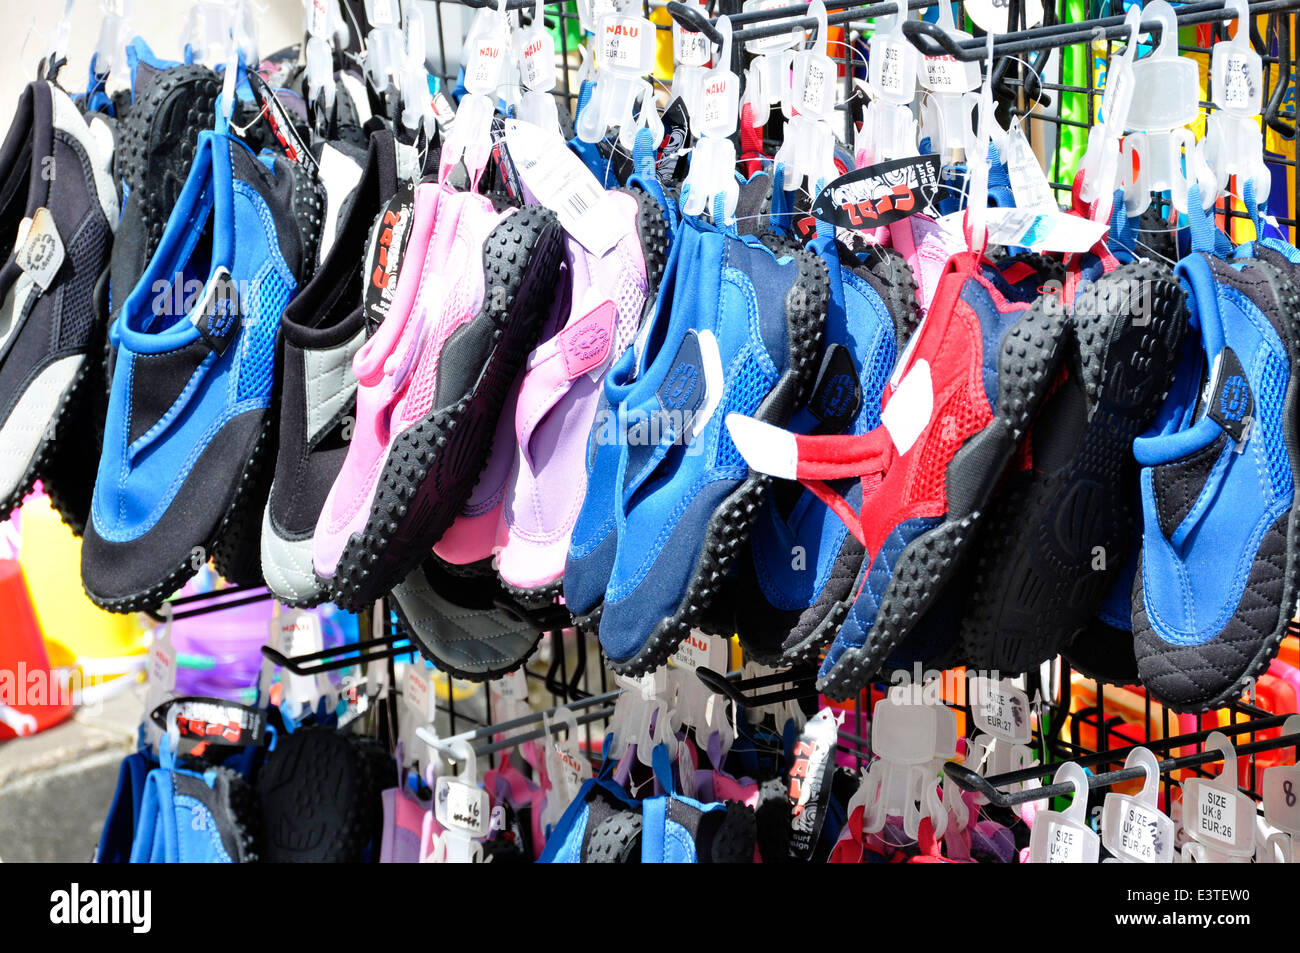 Colourful row of beach shoes - seaside sales display - bright sunlight - summertime - Stock Image